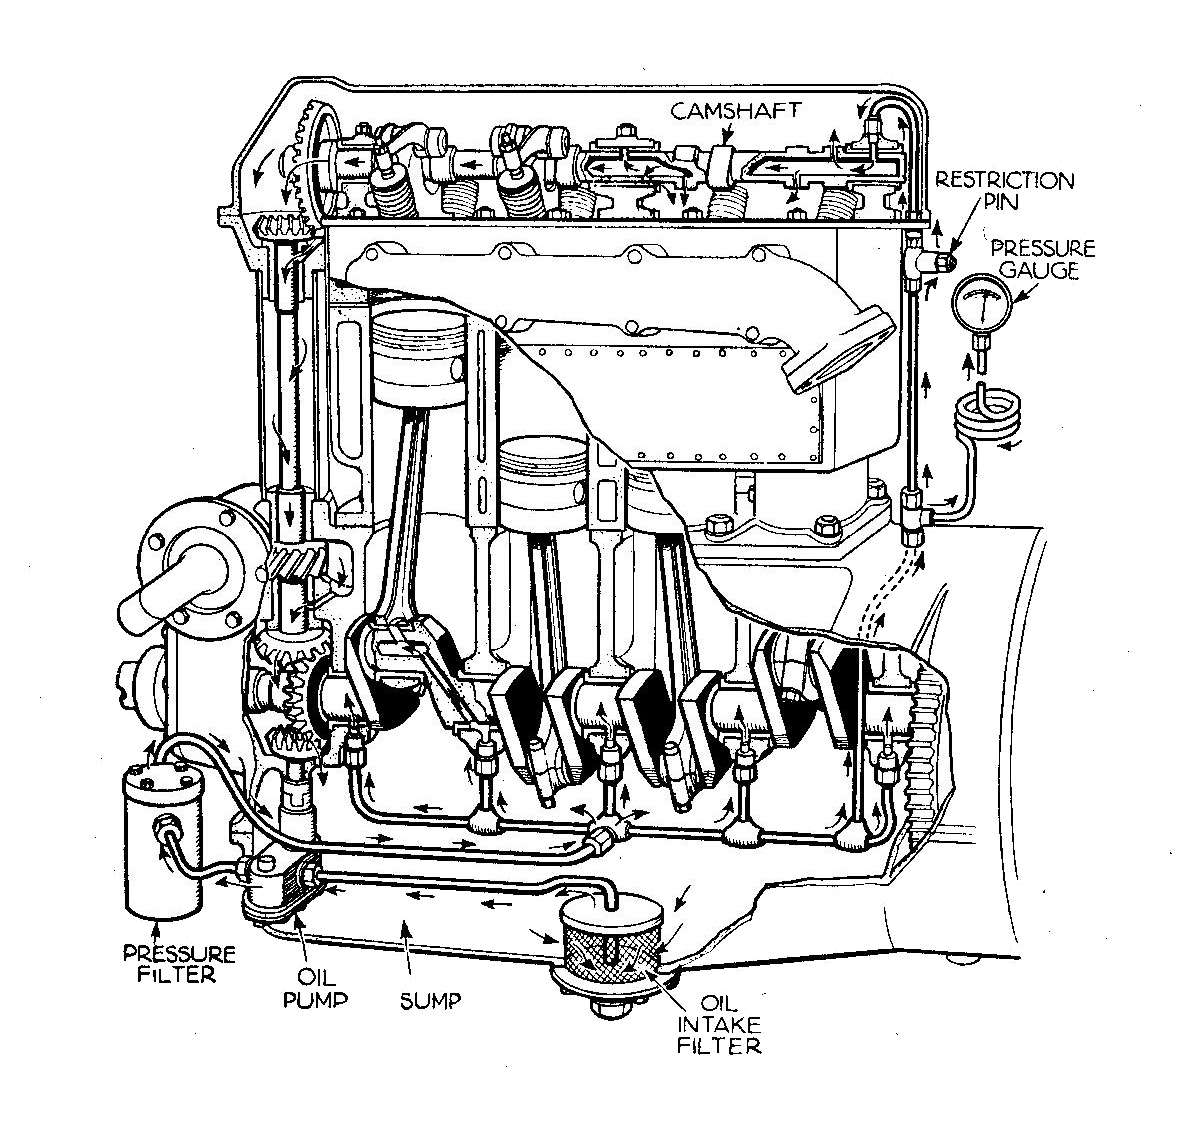 engine oil diagram oil pump  internal combustion engine  wikipedia motor oil diagram oil pump  internal combustion engine